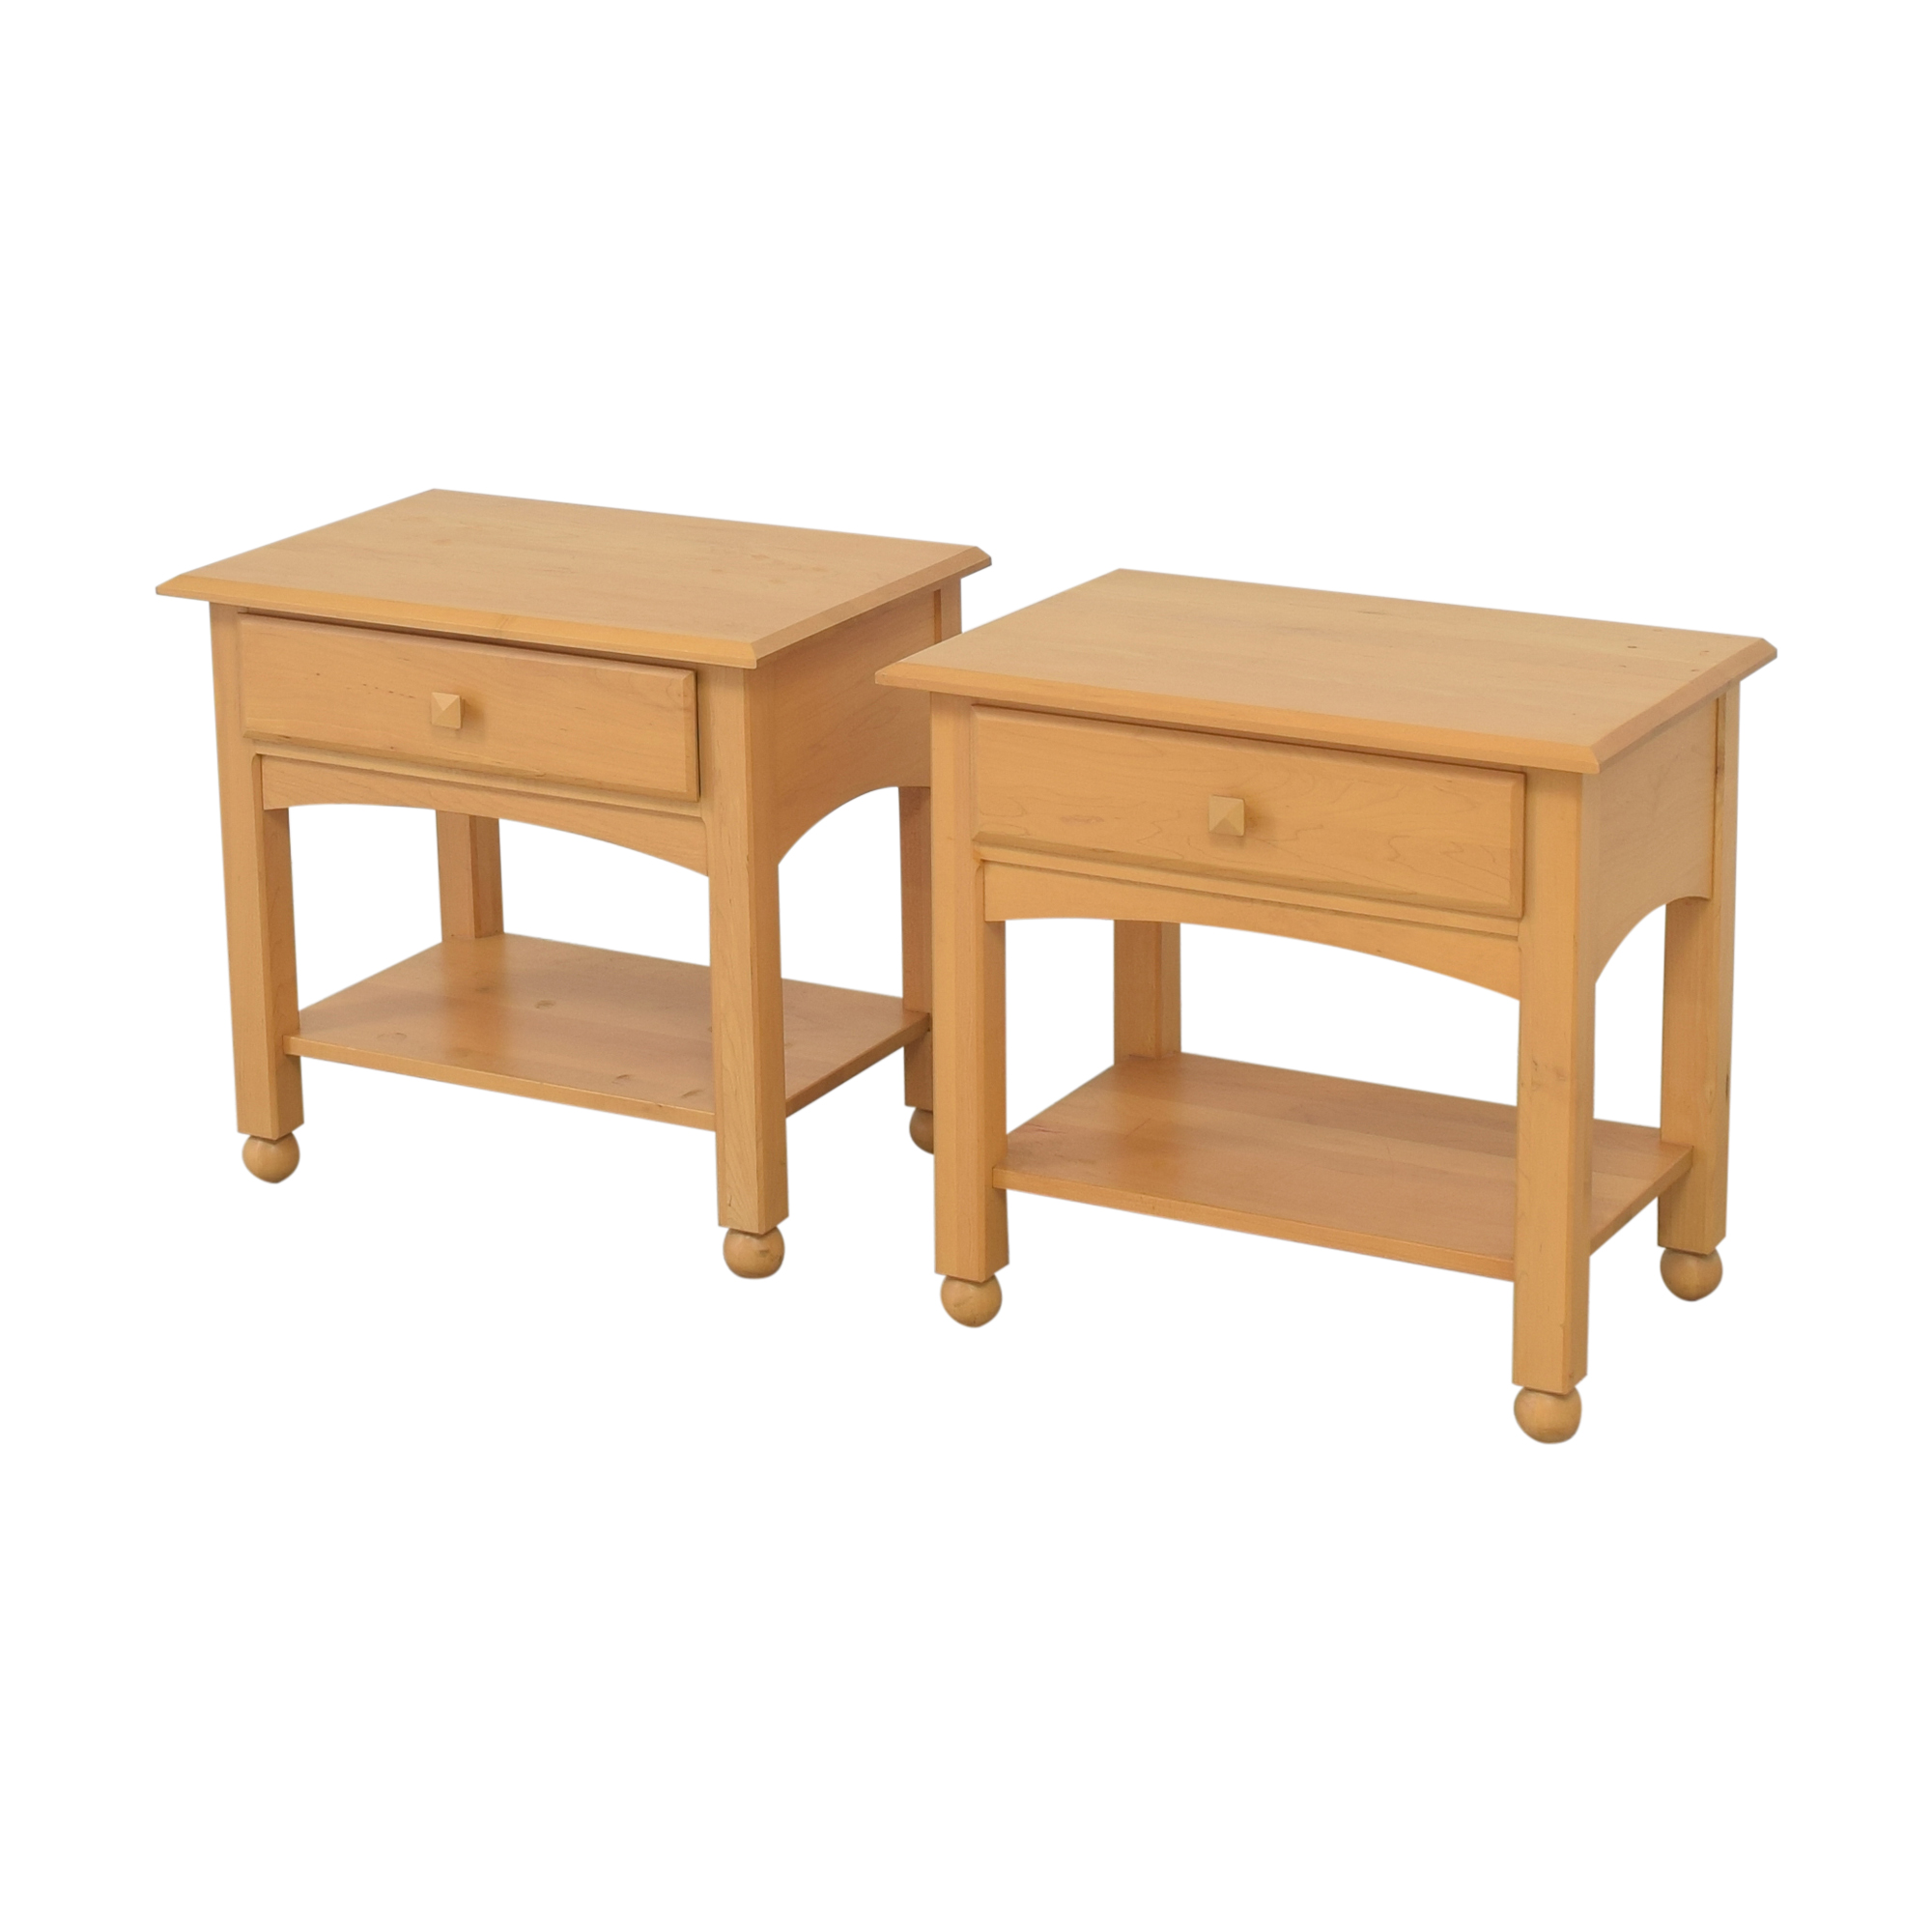 Ethan Allen Ethan Allen American Dimensions End Tables nyc